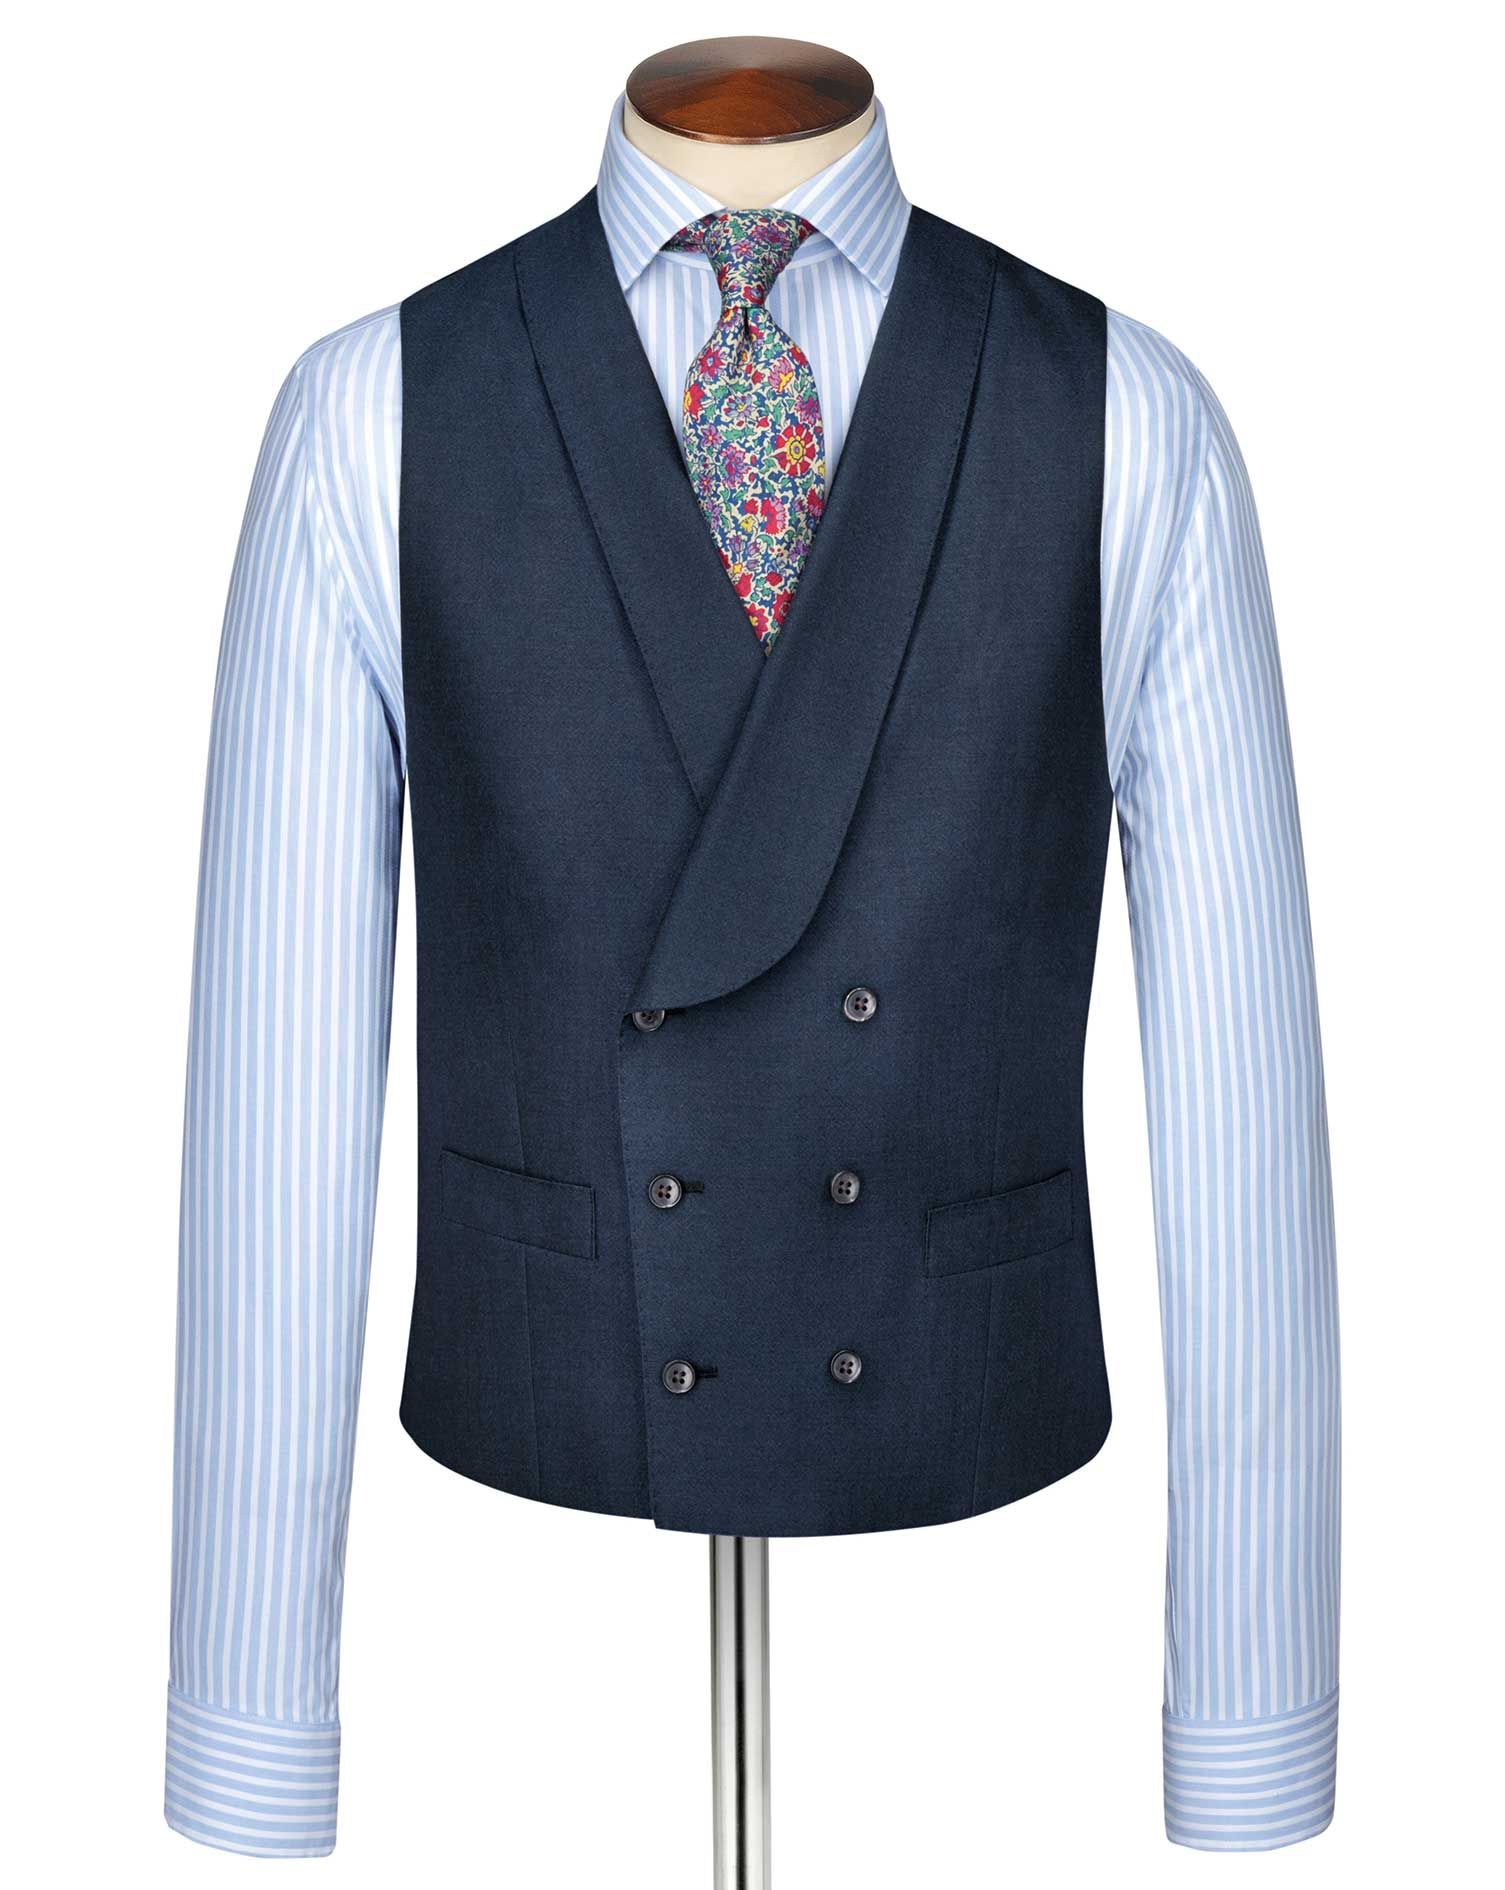 Blue Adjustable Fit British Panama Luxury Suit Wool Waistcoat Size w44 by Charles Tyrwhitt